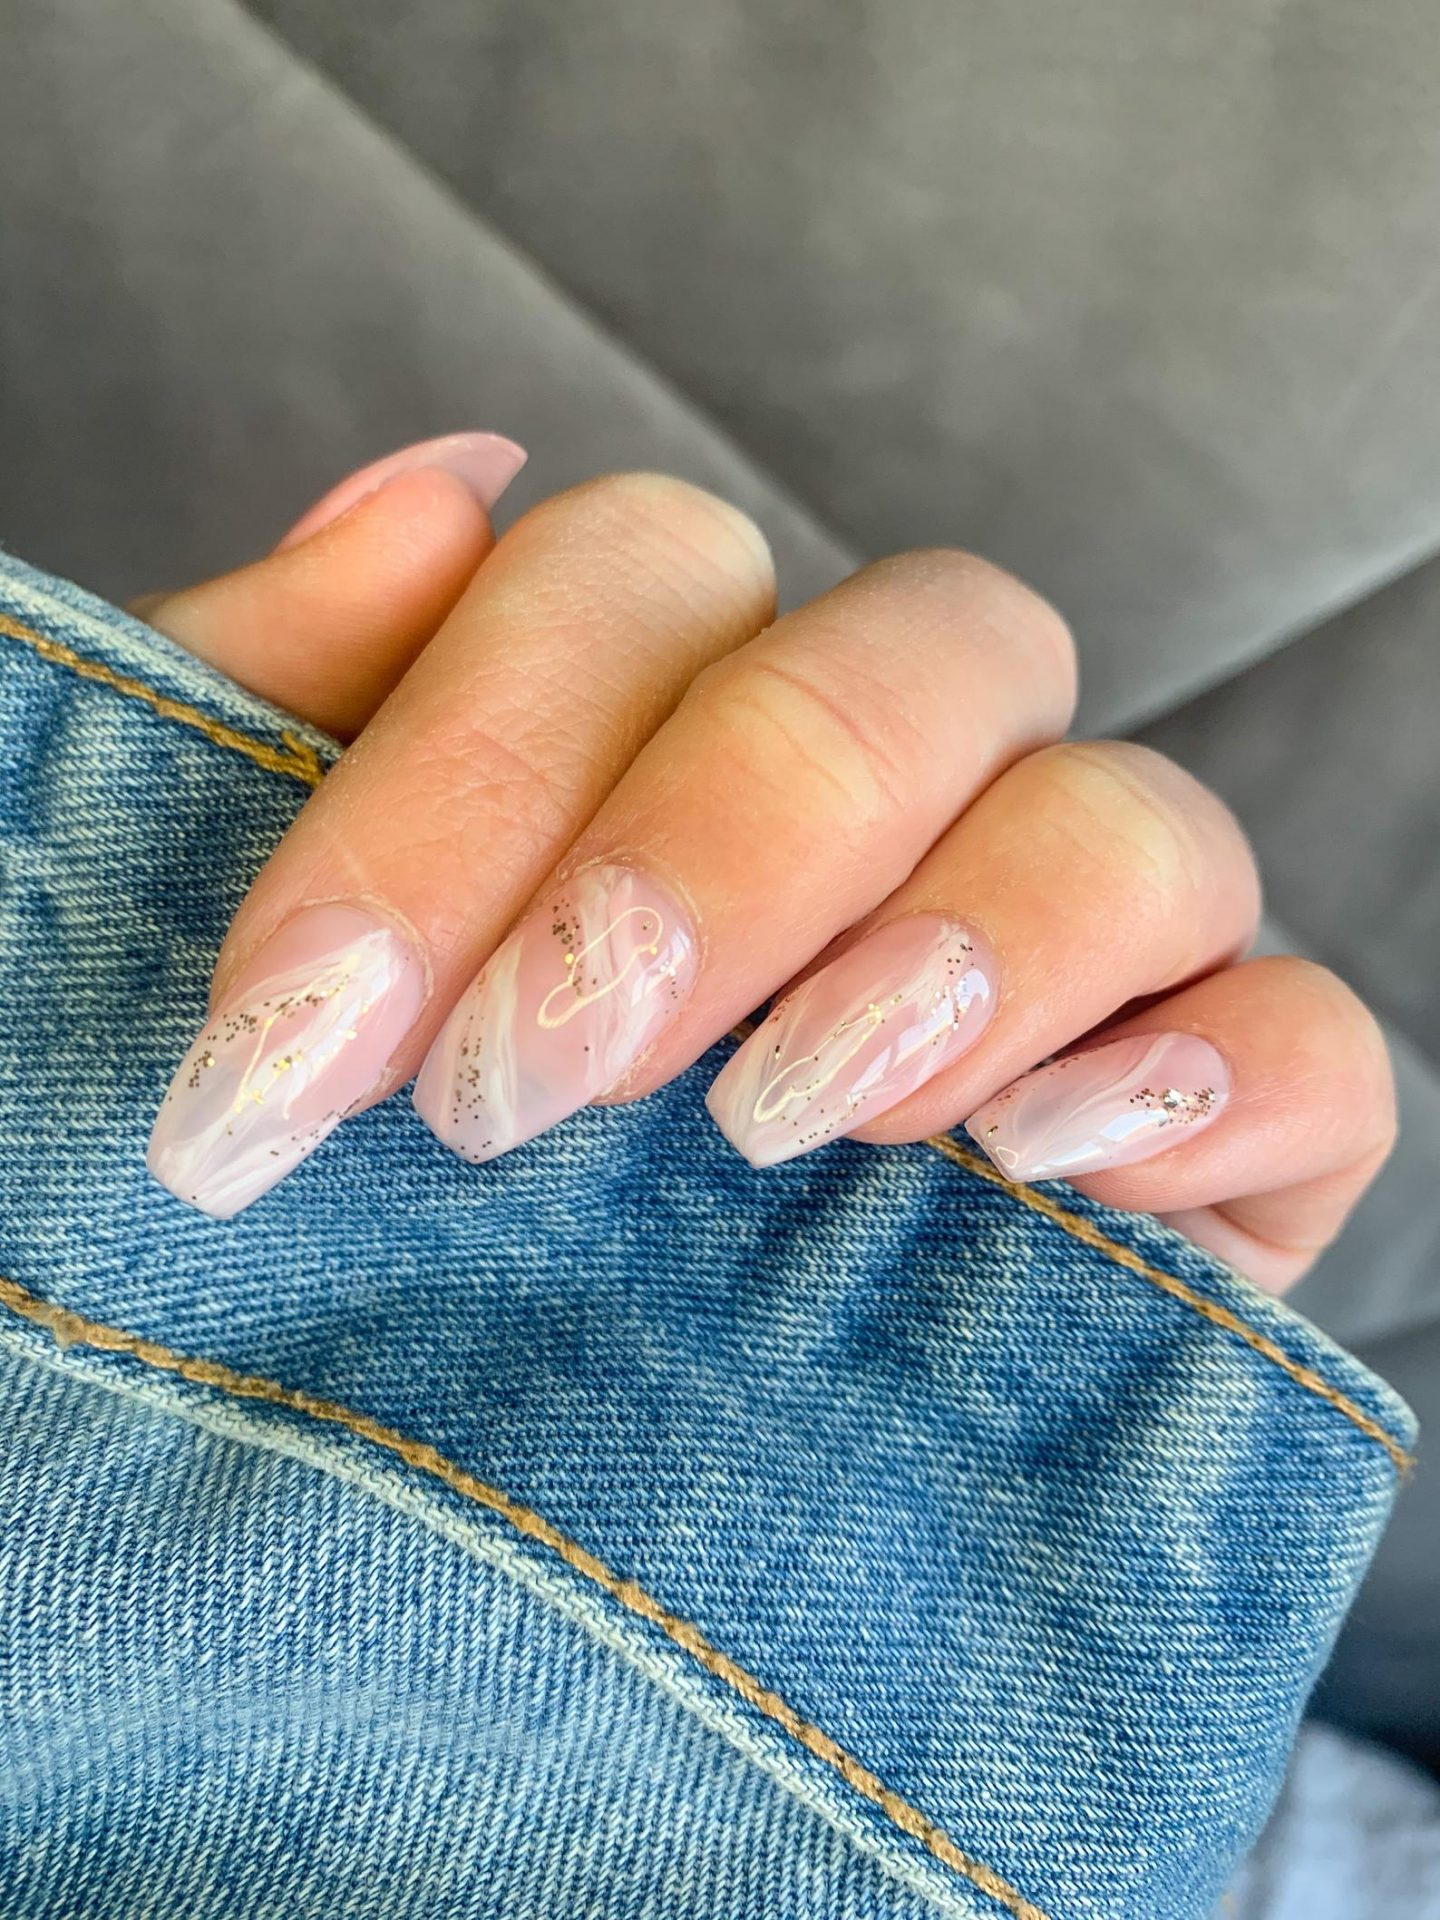 Long white marble nails with glitter